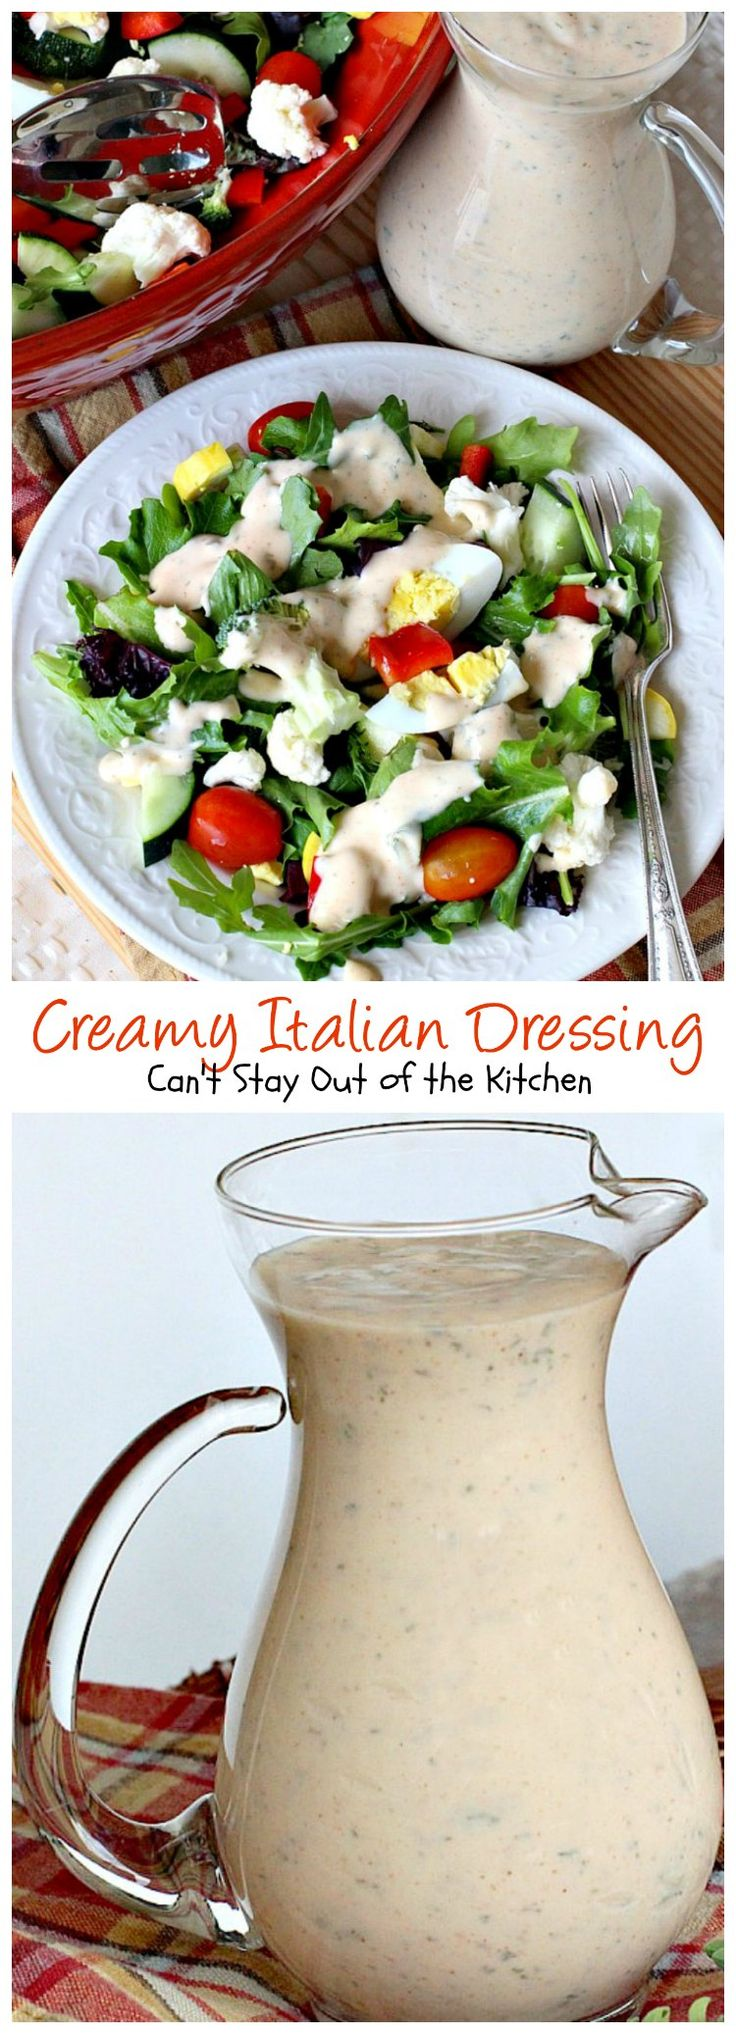 Creamy Italian Dressing   Can't Stay Out of the Kitchen   this is one of the BEST #saladdressings I've ever eaten. It is absolutely delicious, and so quick and easy to make. #salad #glutenfree